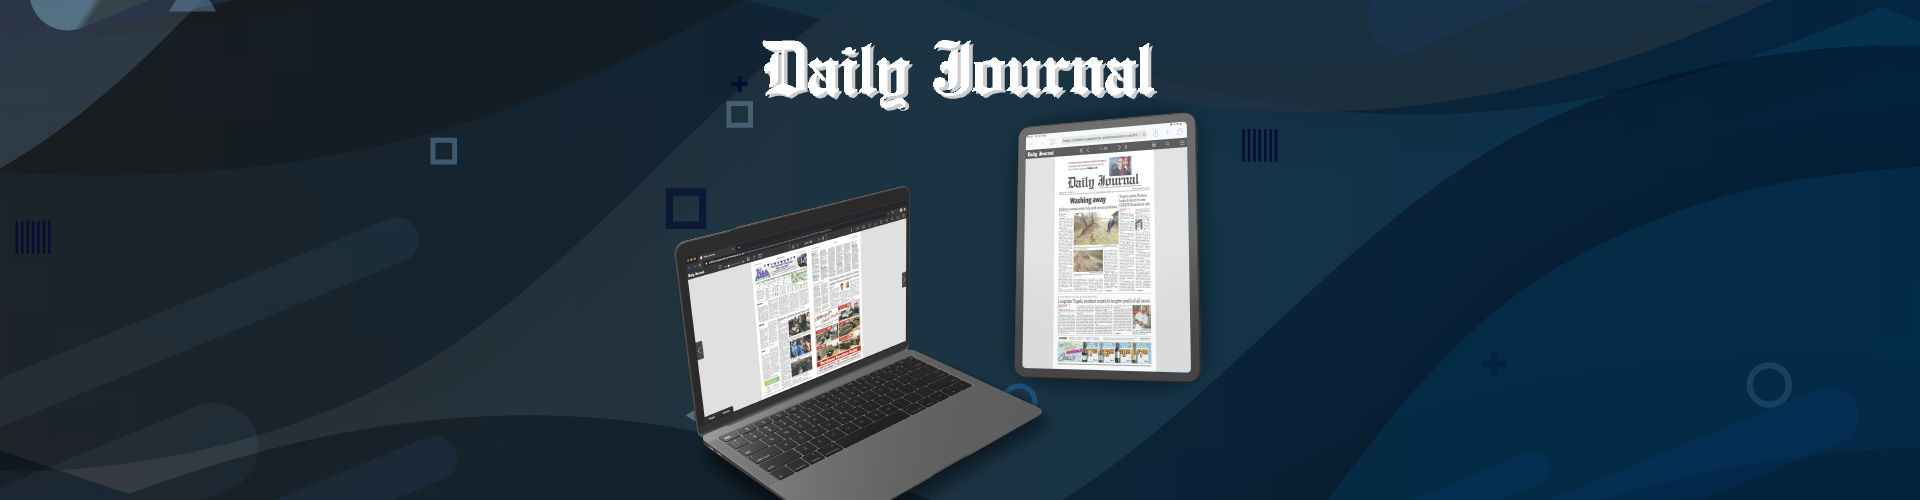 Press Release: Journal, Inc. Adopts PageSuite's Market-Leading ePaper Solution As They Unveil New Digital Strategy